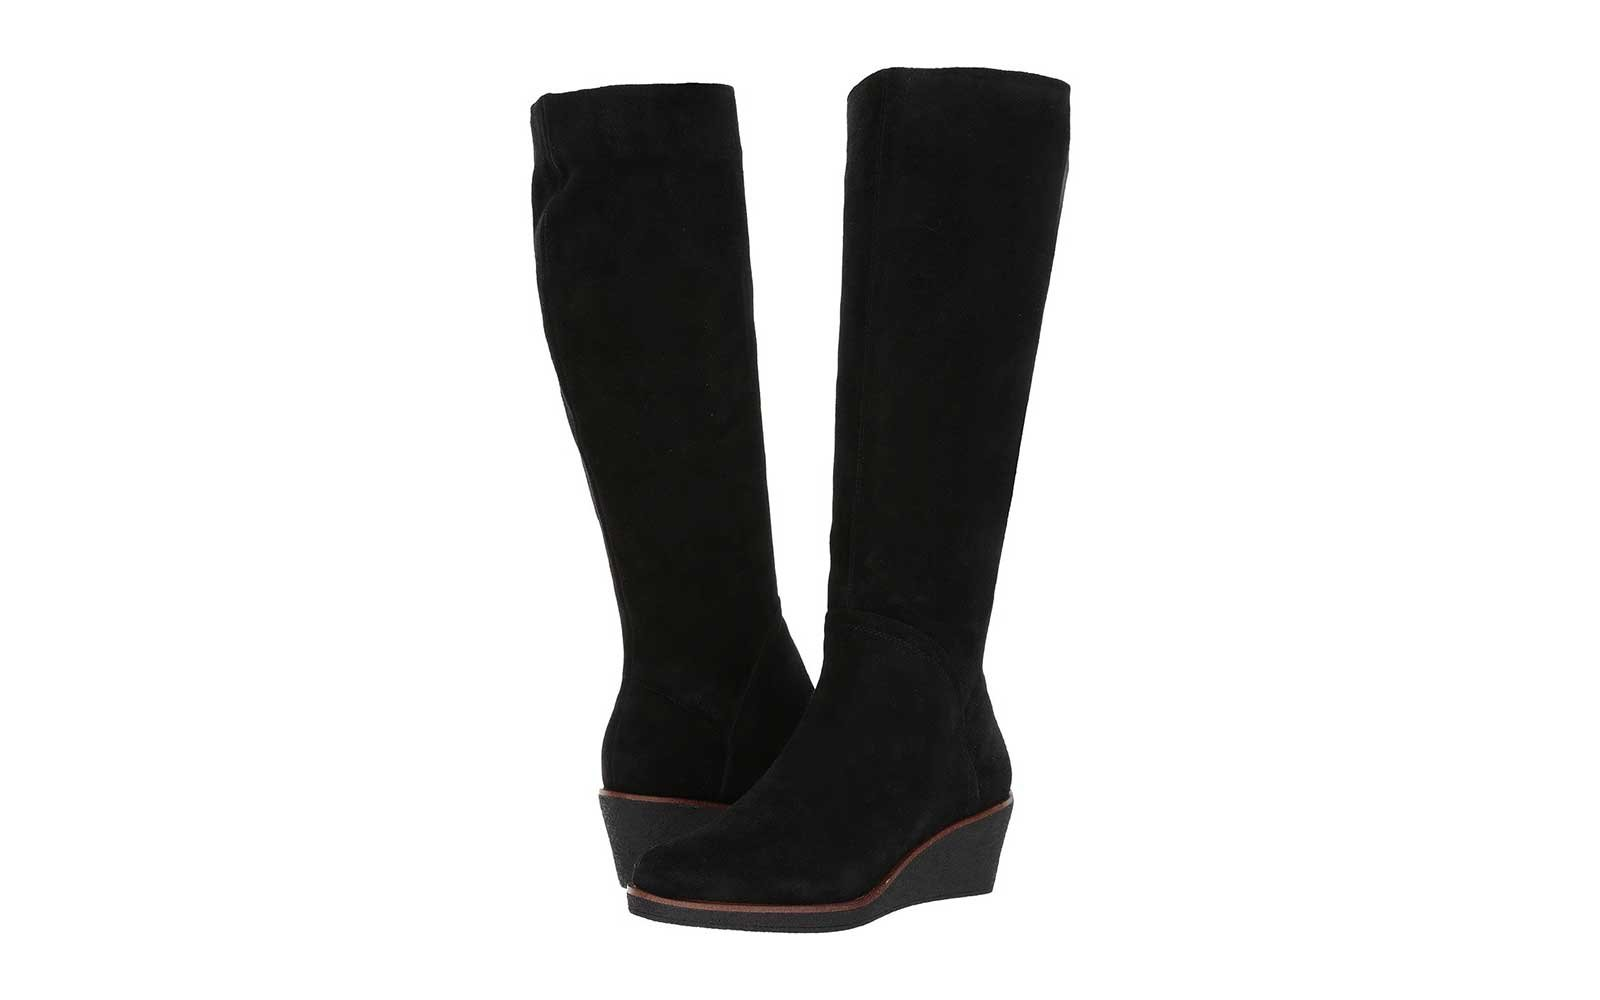 Suede Wedge Boots by Aerosoles